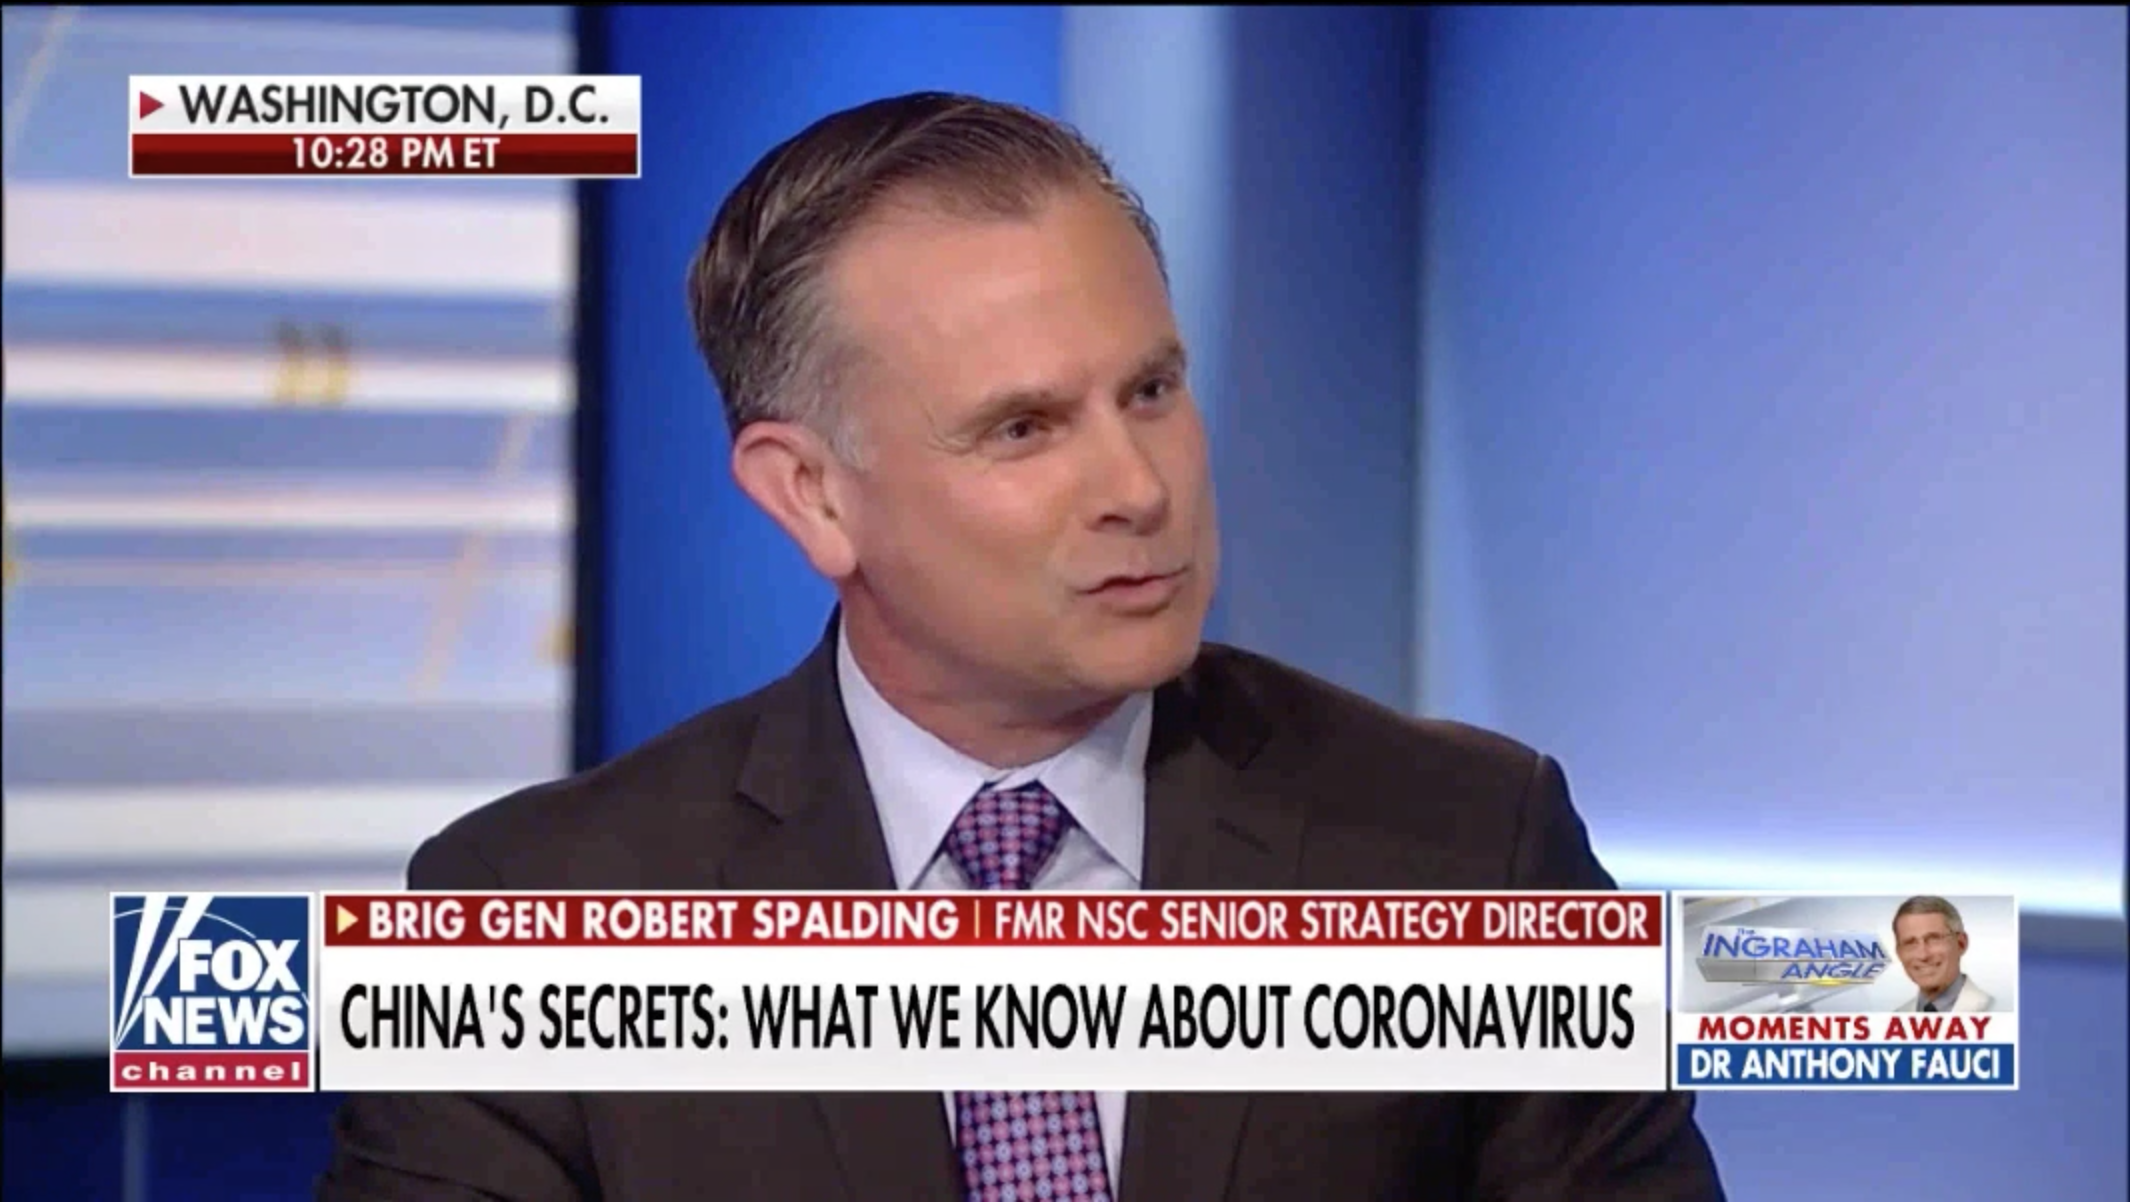 Rob Spalding discusses the likelihood that China is hiding information about the Coronavirus outbreak.